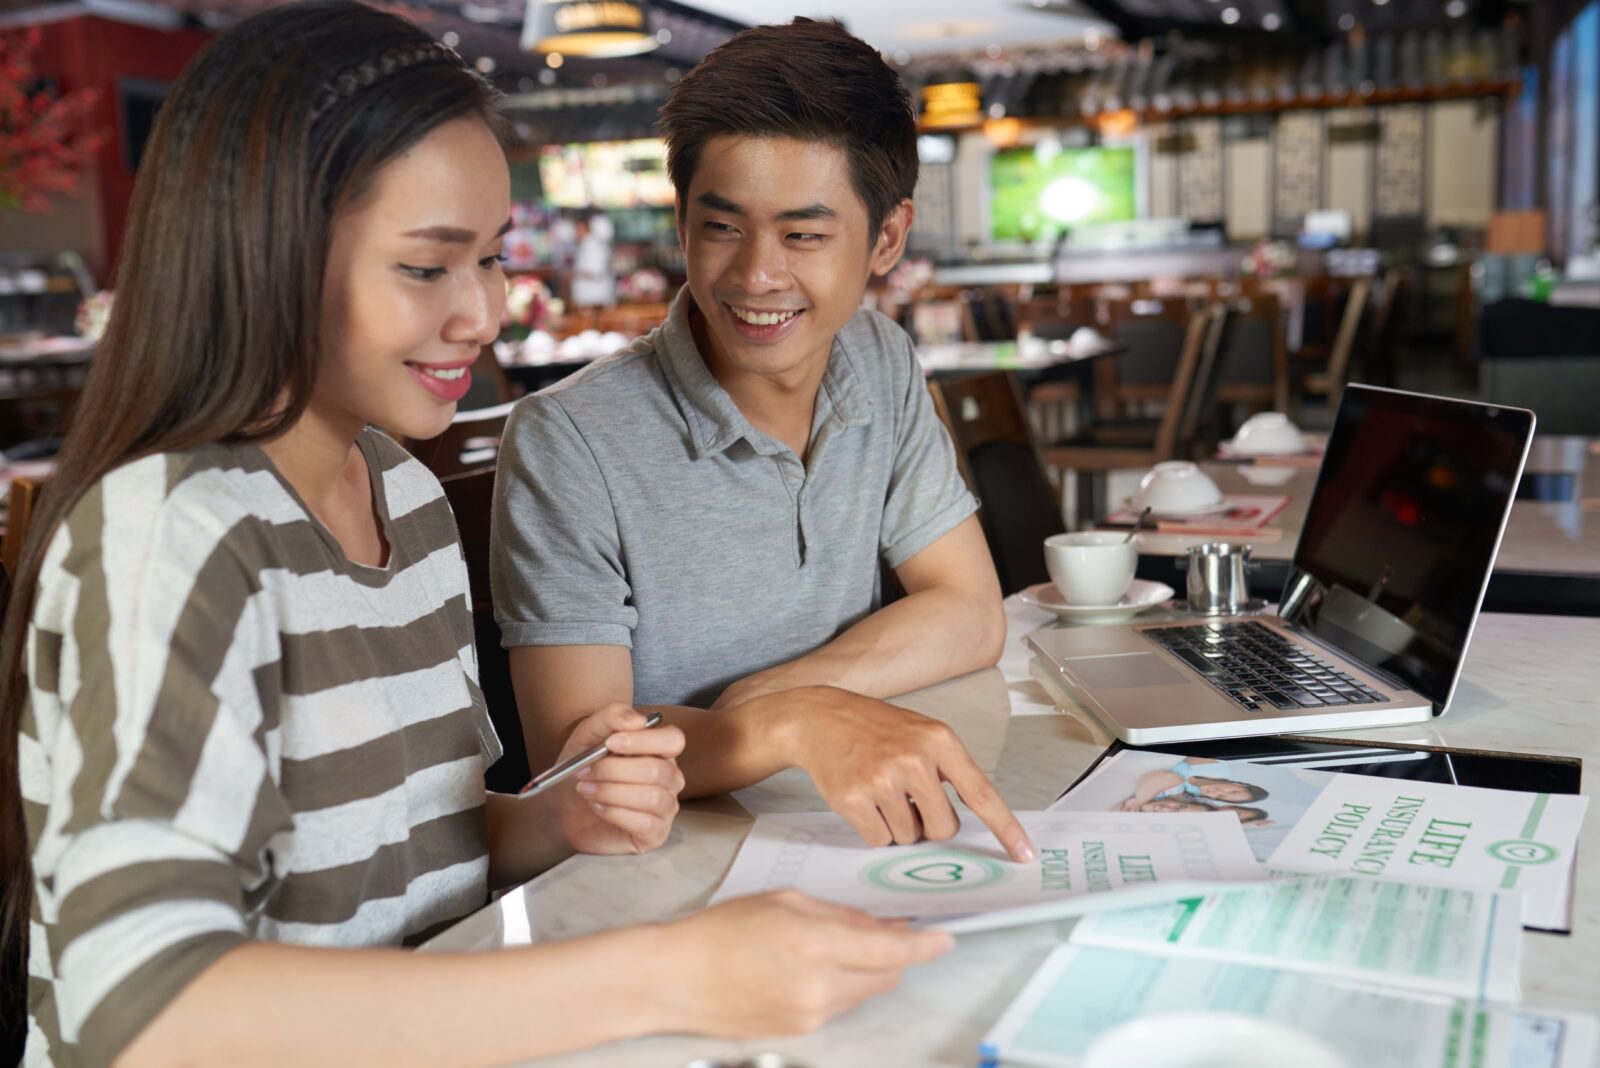 Joyful Asian couple in casualwear sitting at table of spacious cafe and studying details of life insurance policy